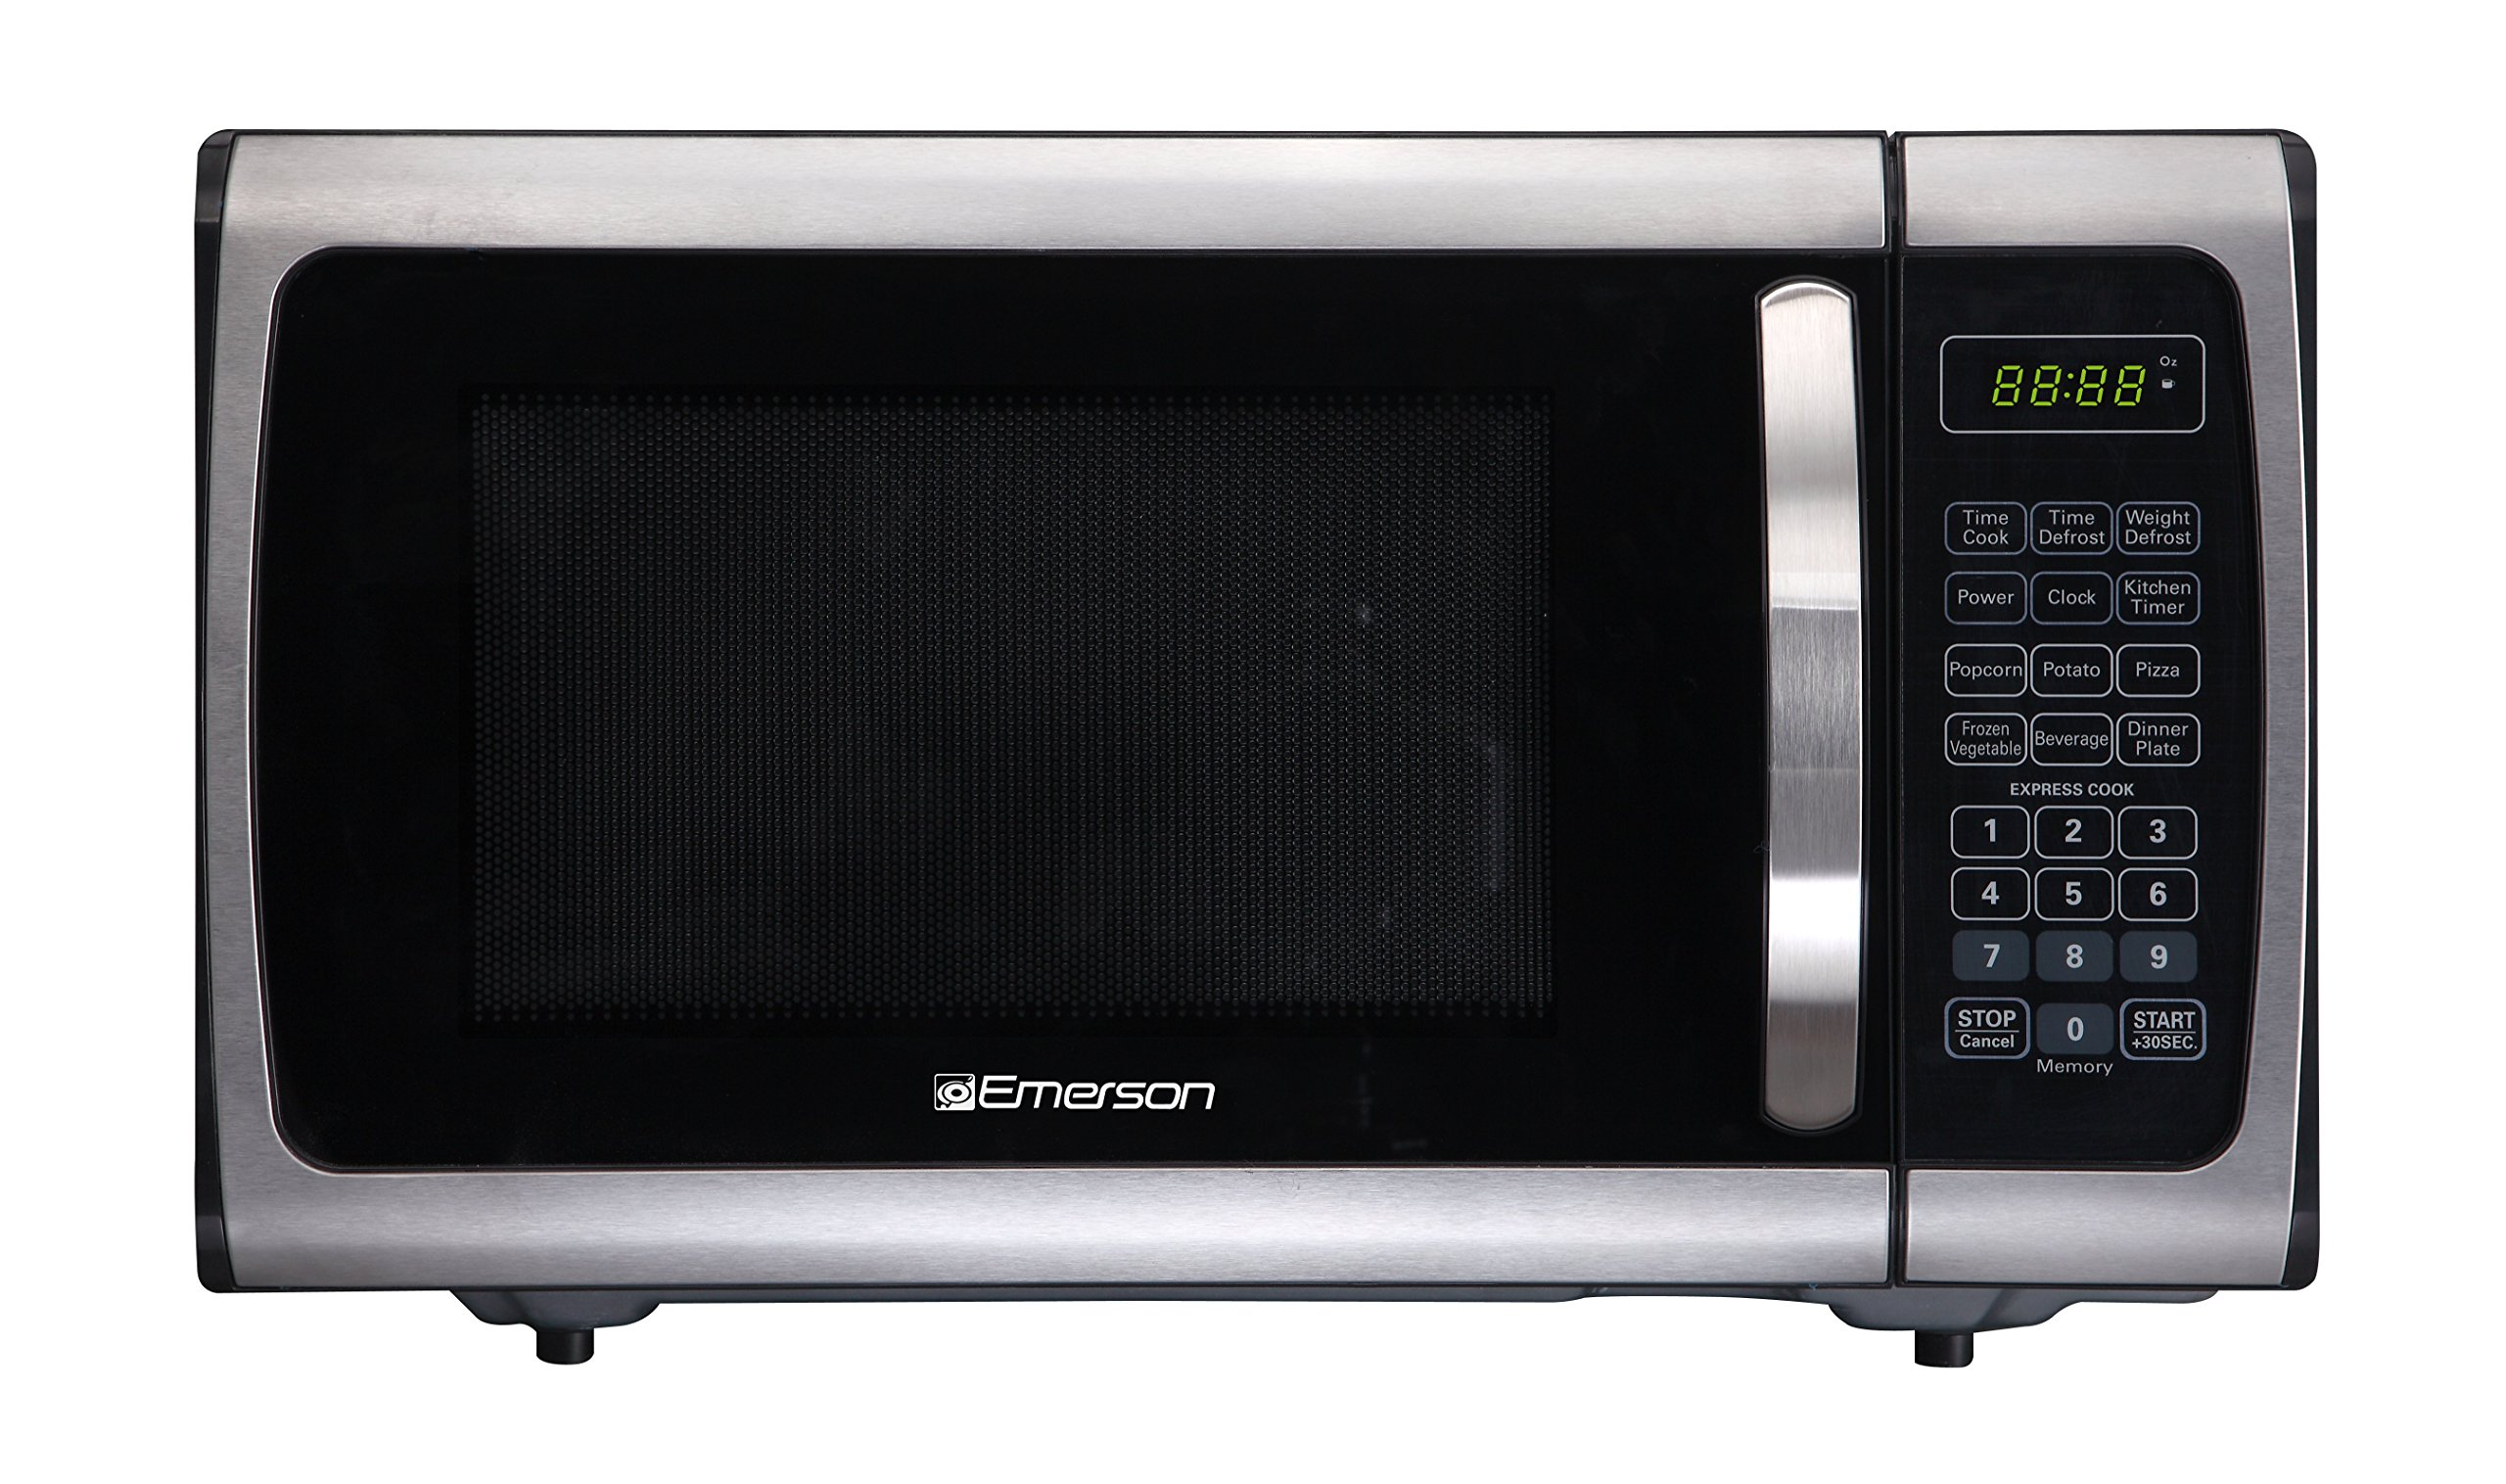 Emerson Radio ER105005 Counter Top Microwave, 0.9 Cu Ft, 900 Watt, Stainless and Black